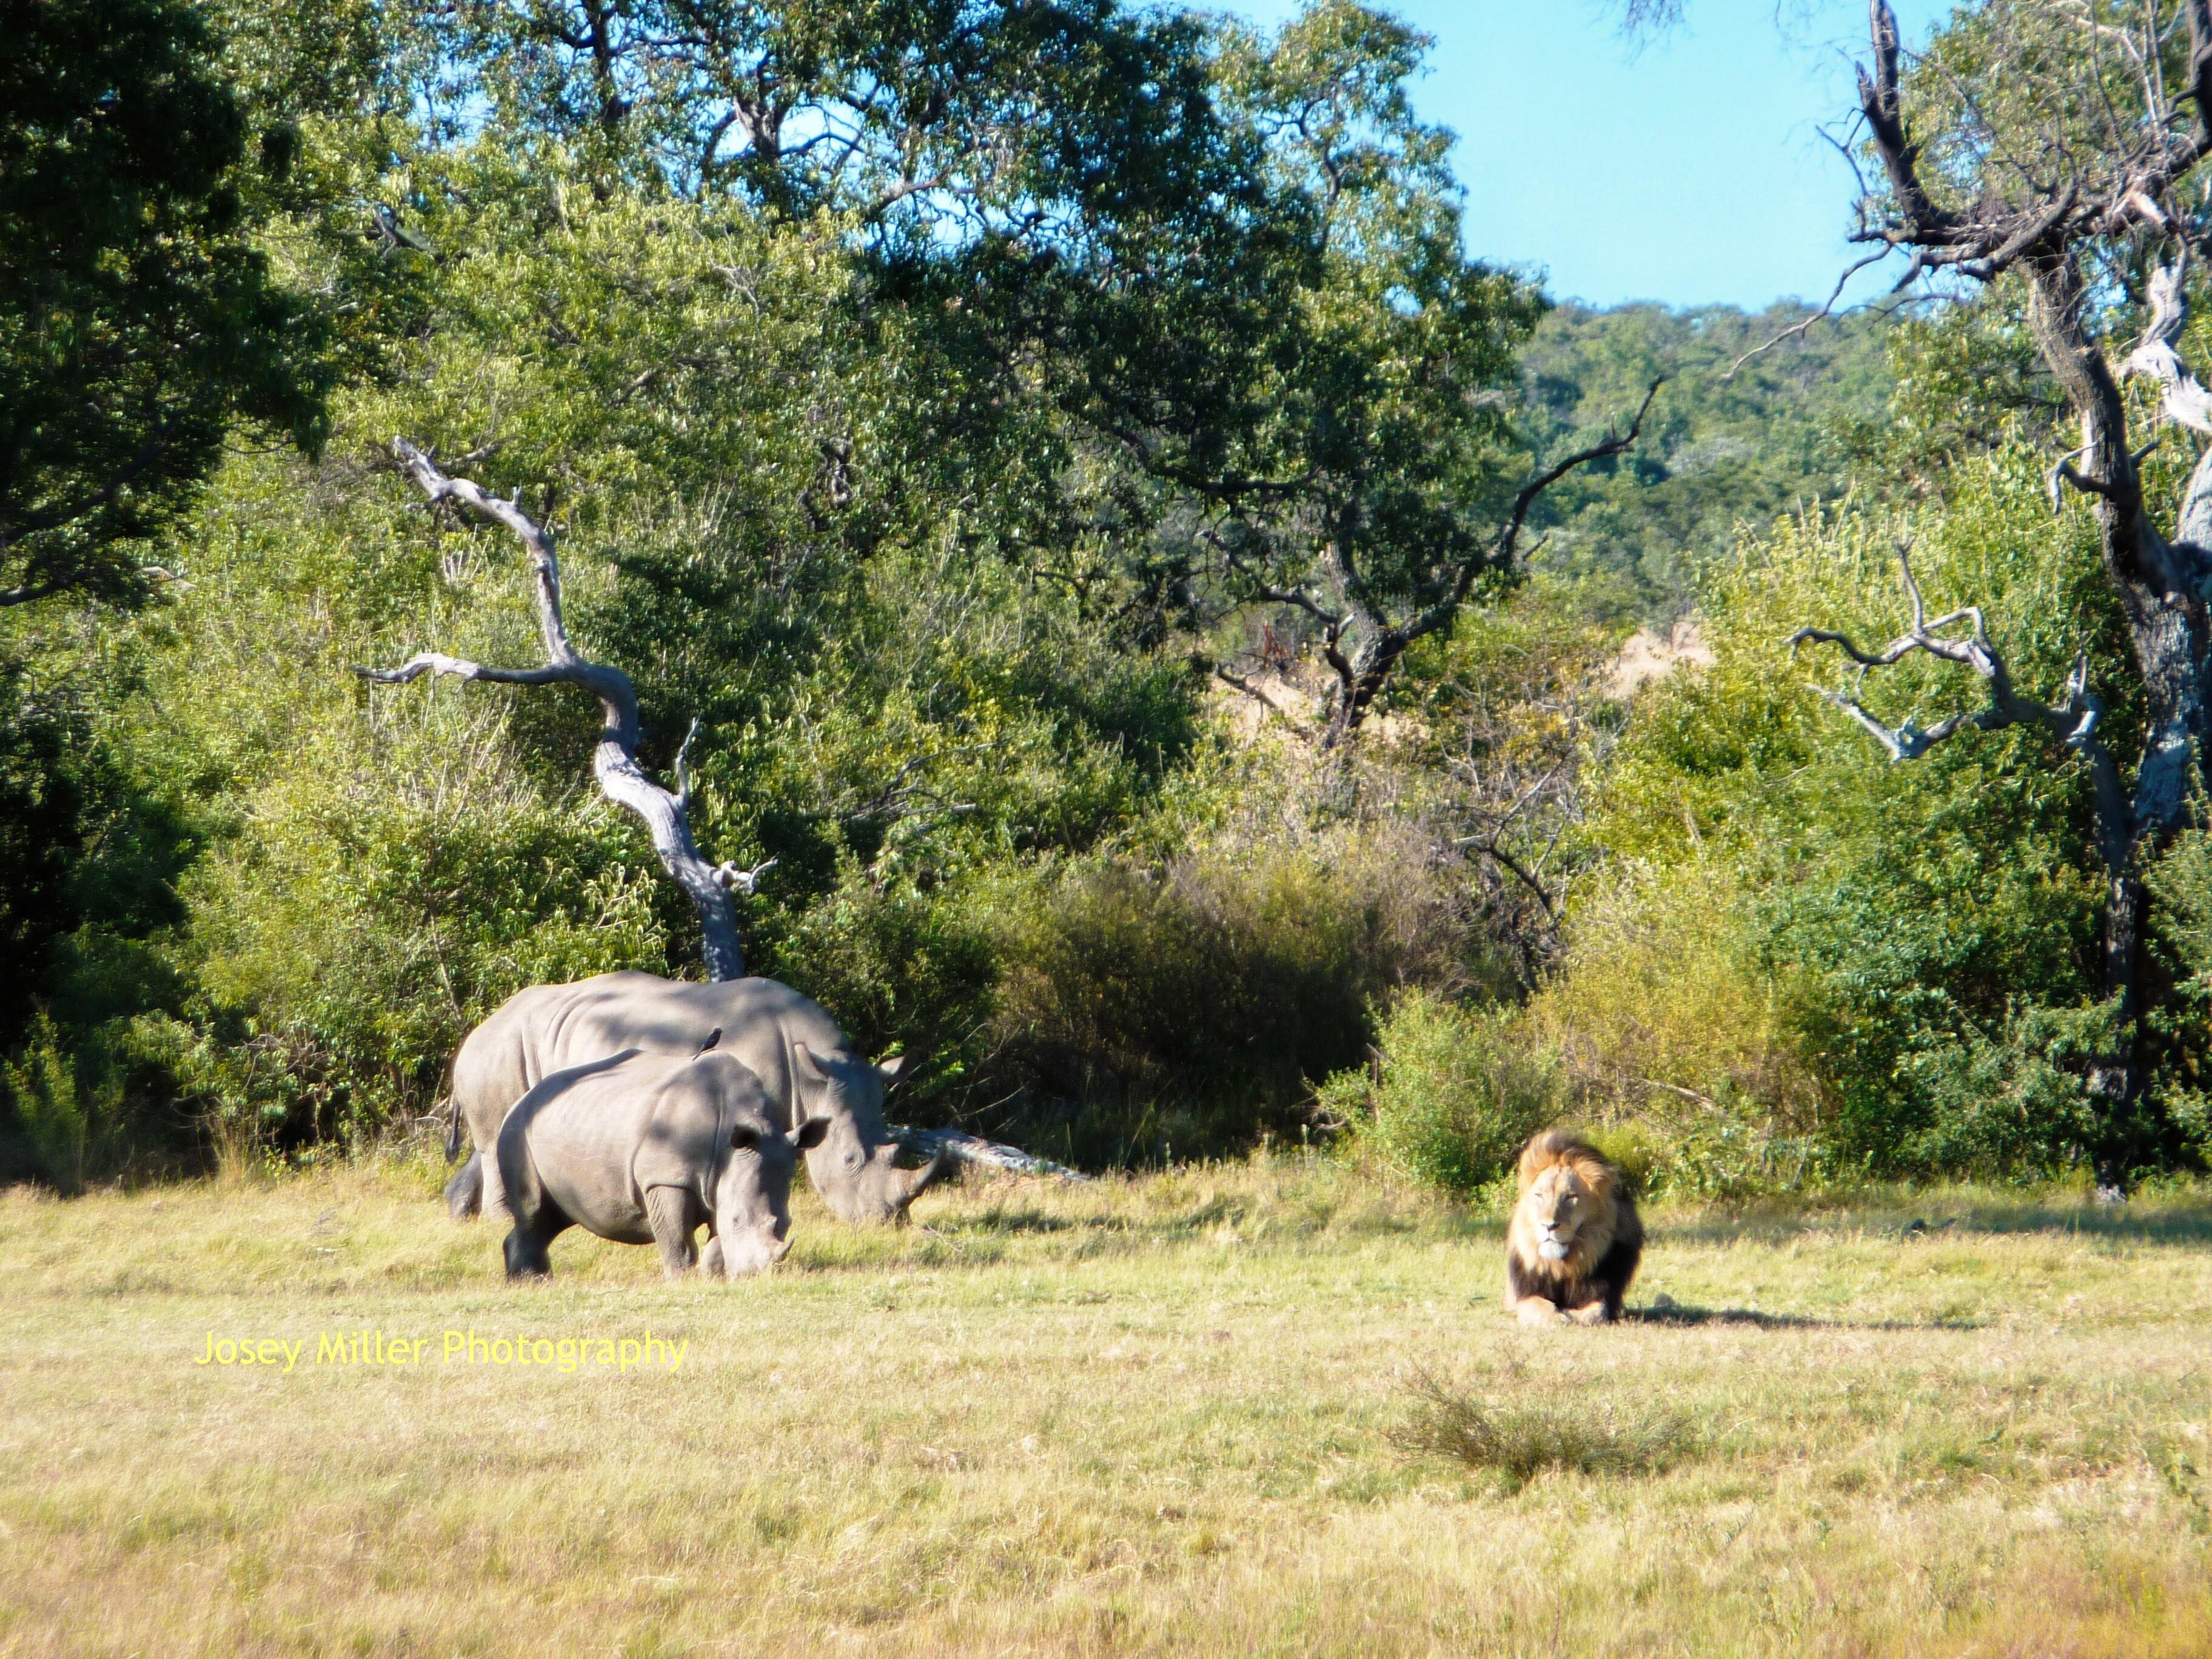 Private Safaris and Adventure Tour to South Africa | The Journeys